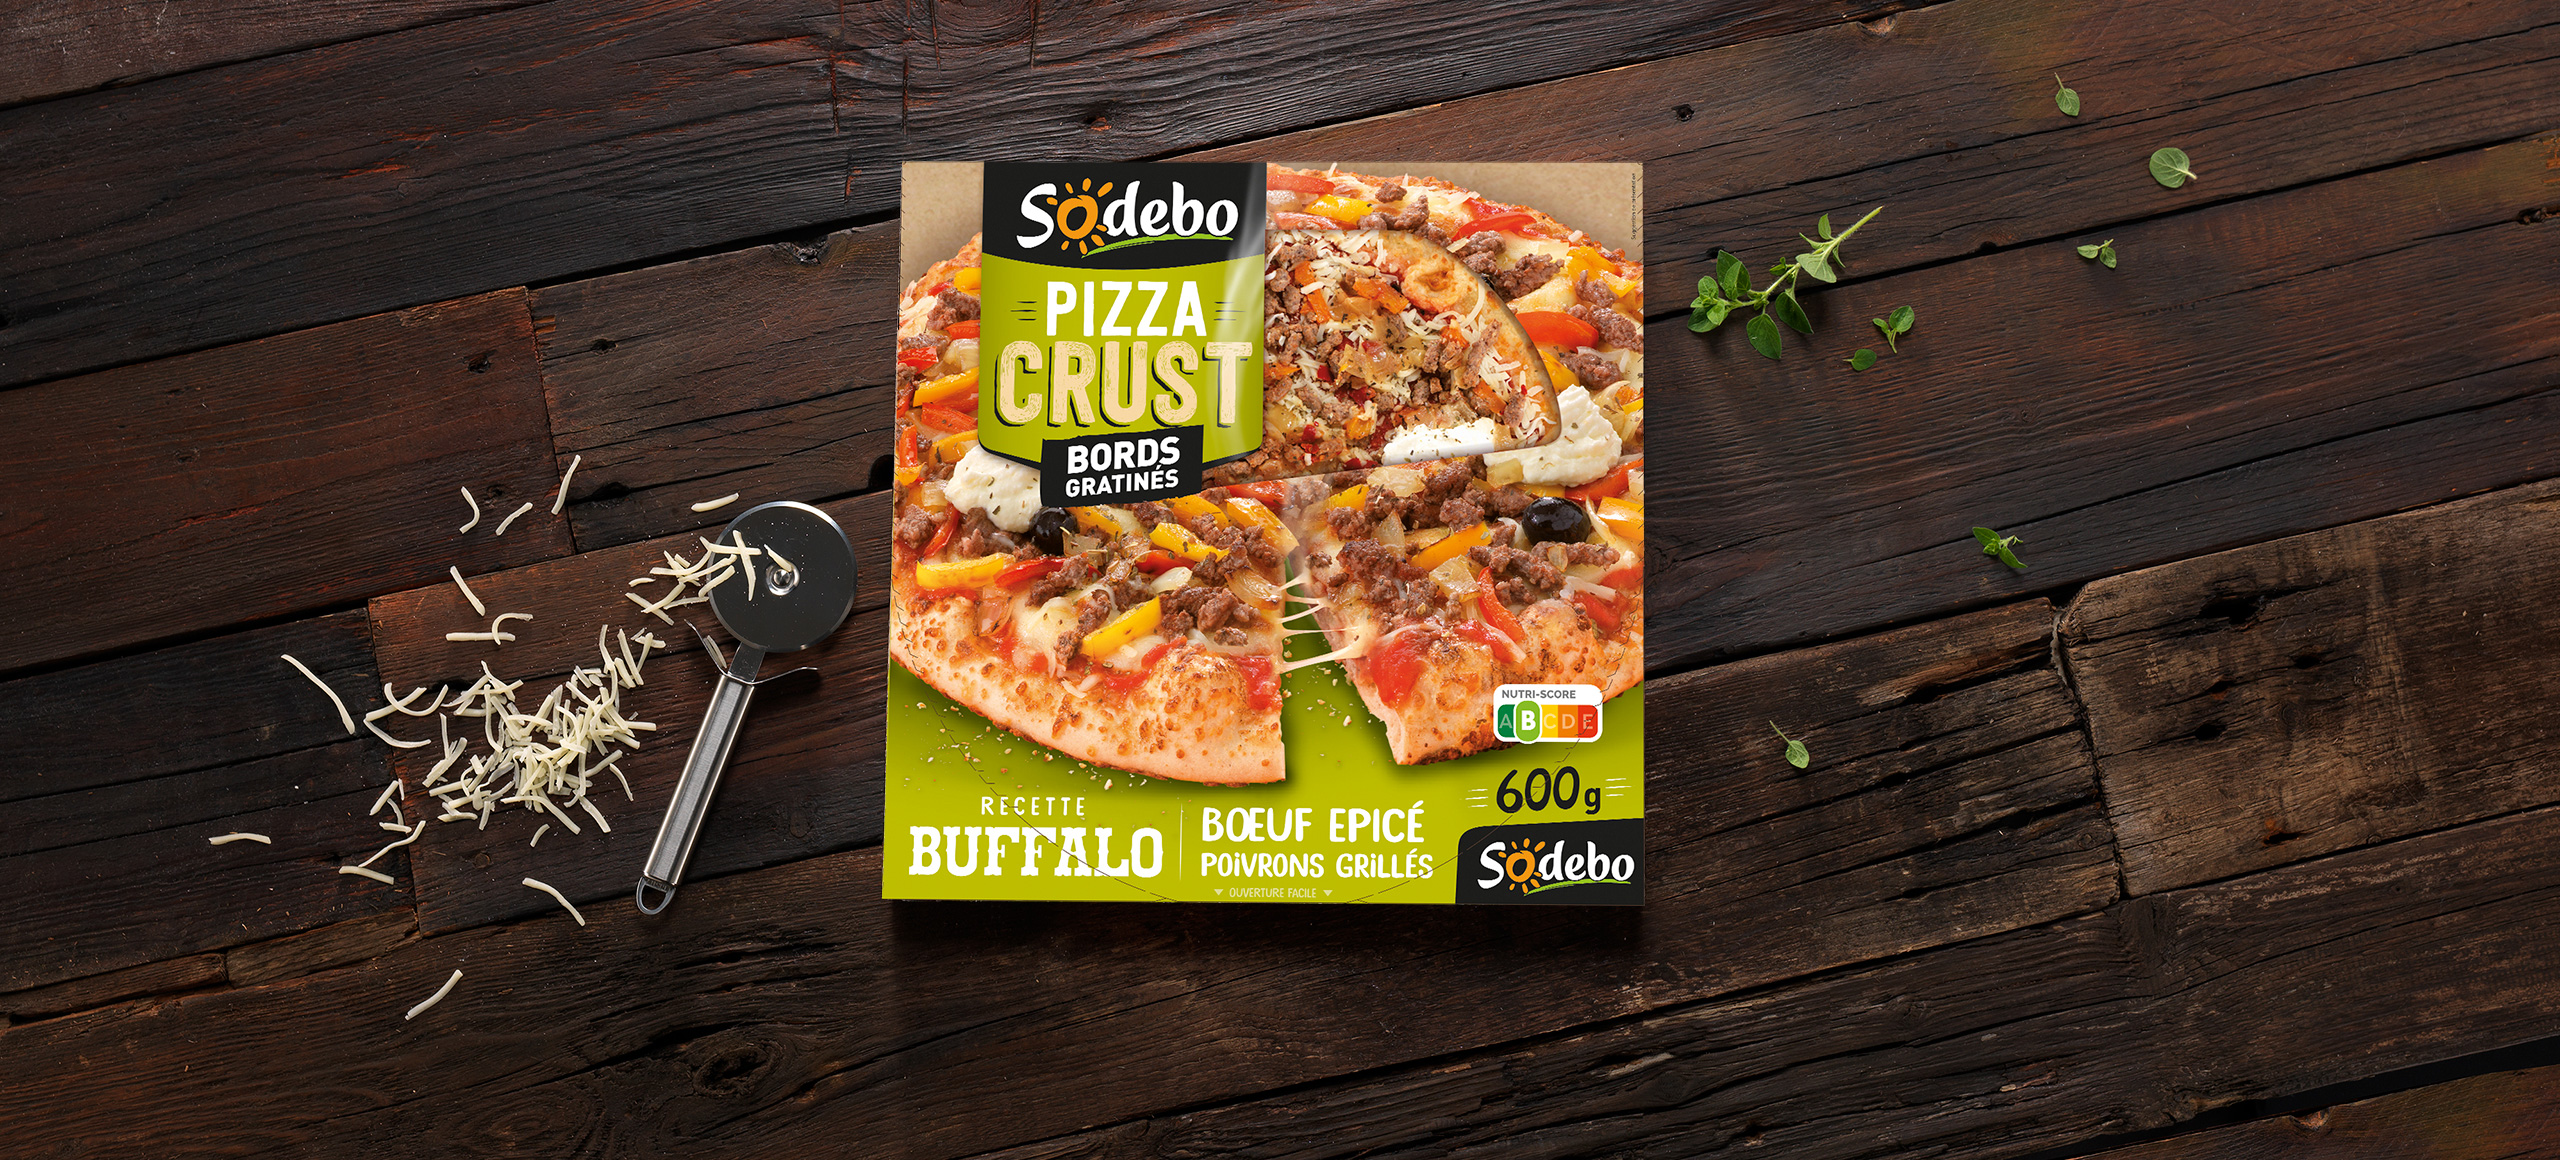 Pizza Crust - Buffalo